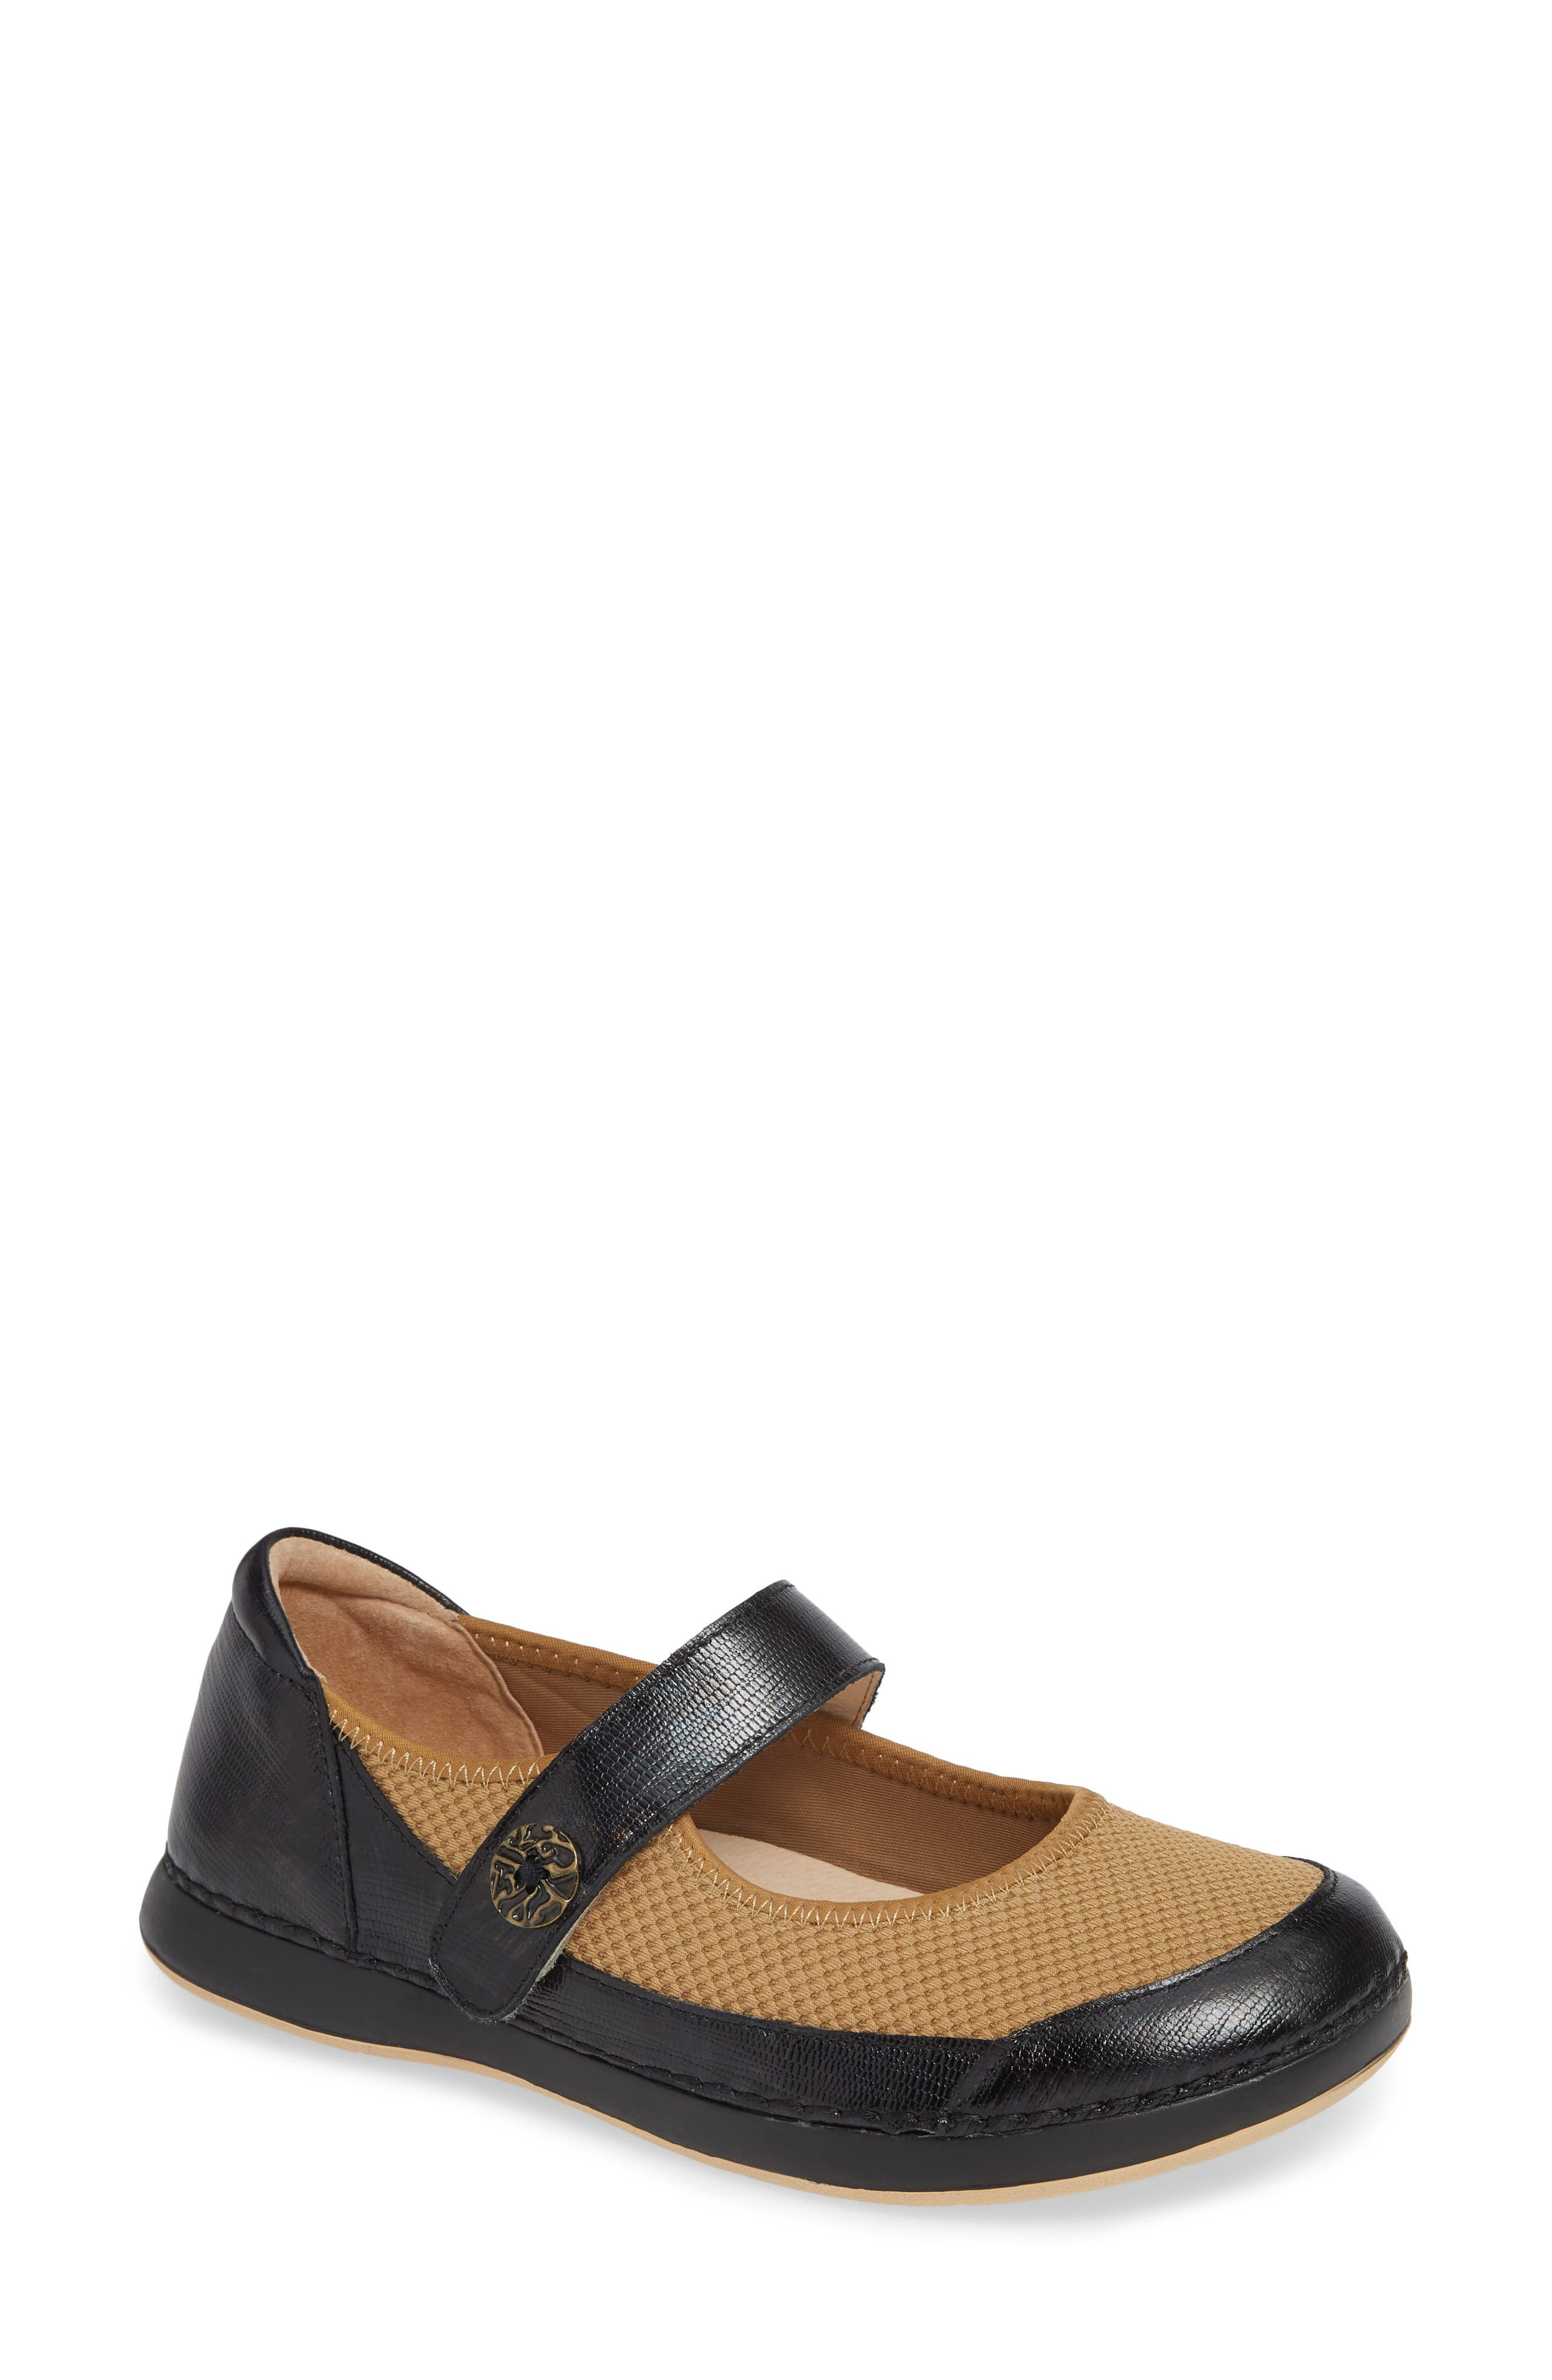 ALEGRIA, Gem Mary Jane Flat, Main thumbnail 1, color, TIDAL LEATHER